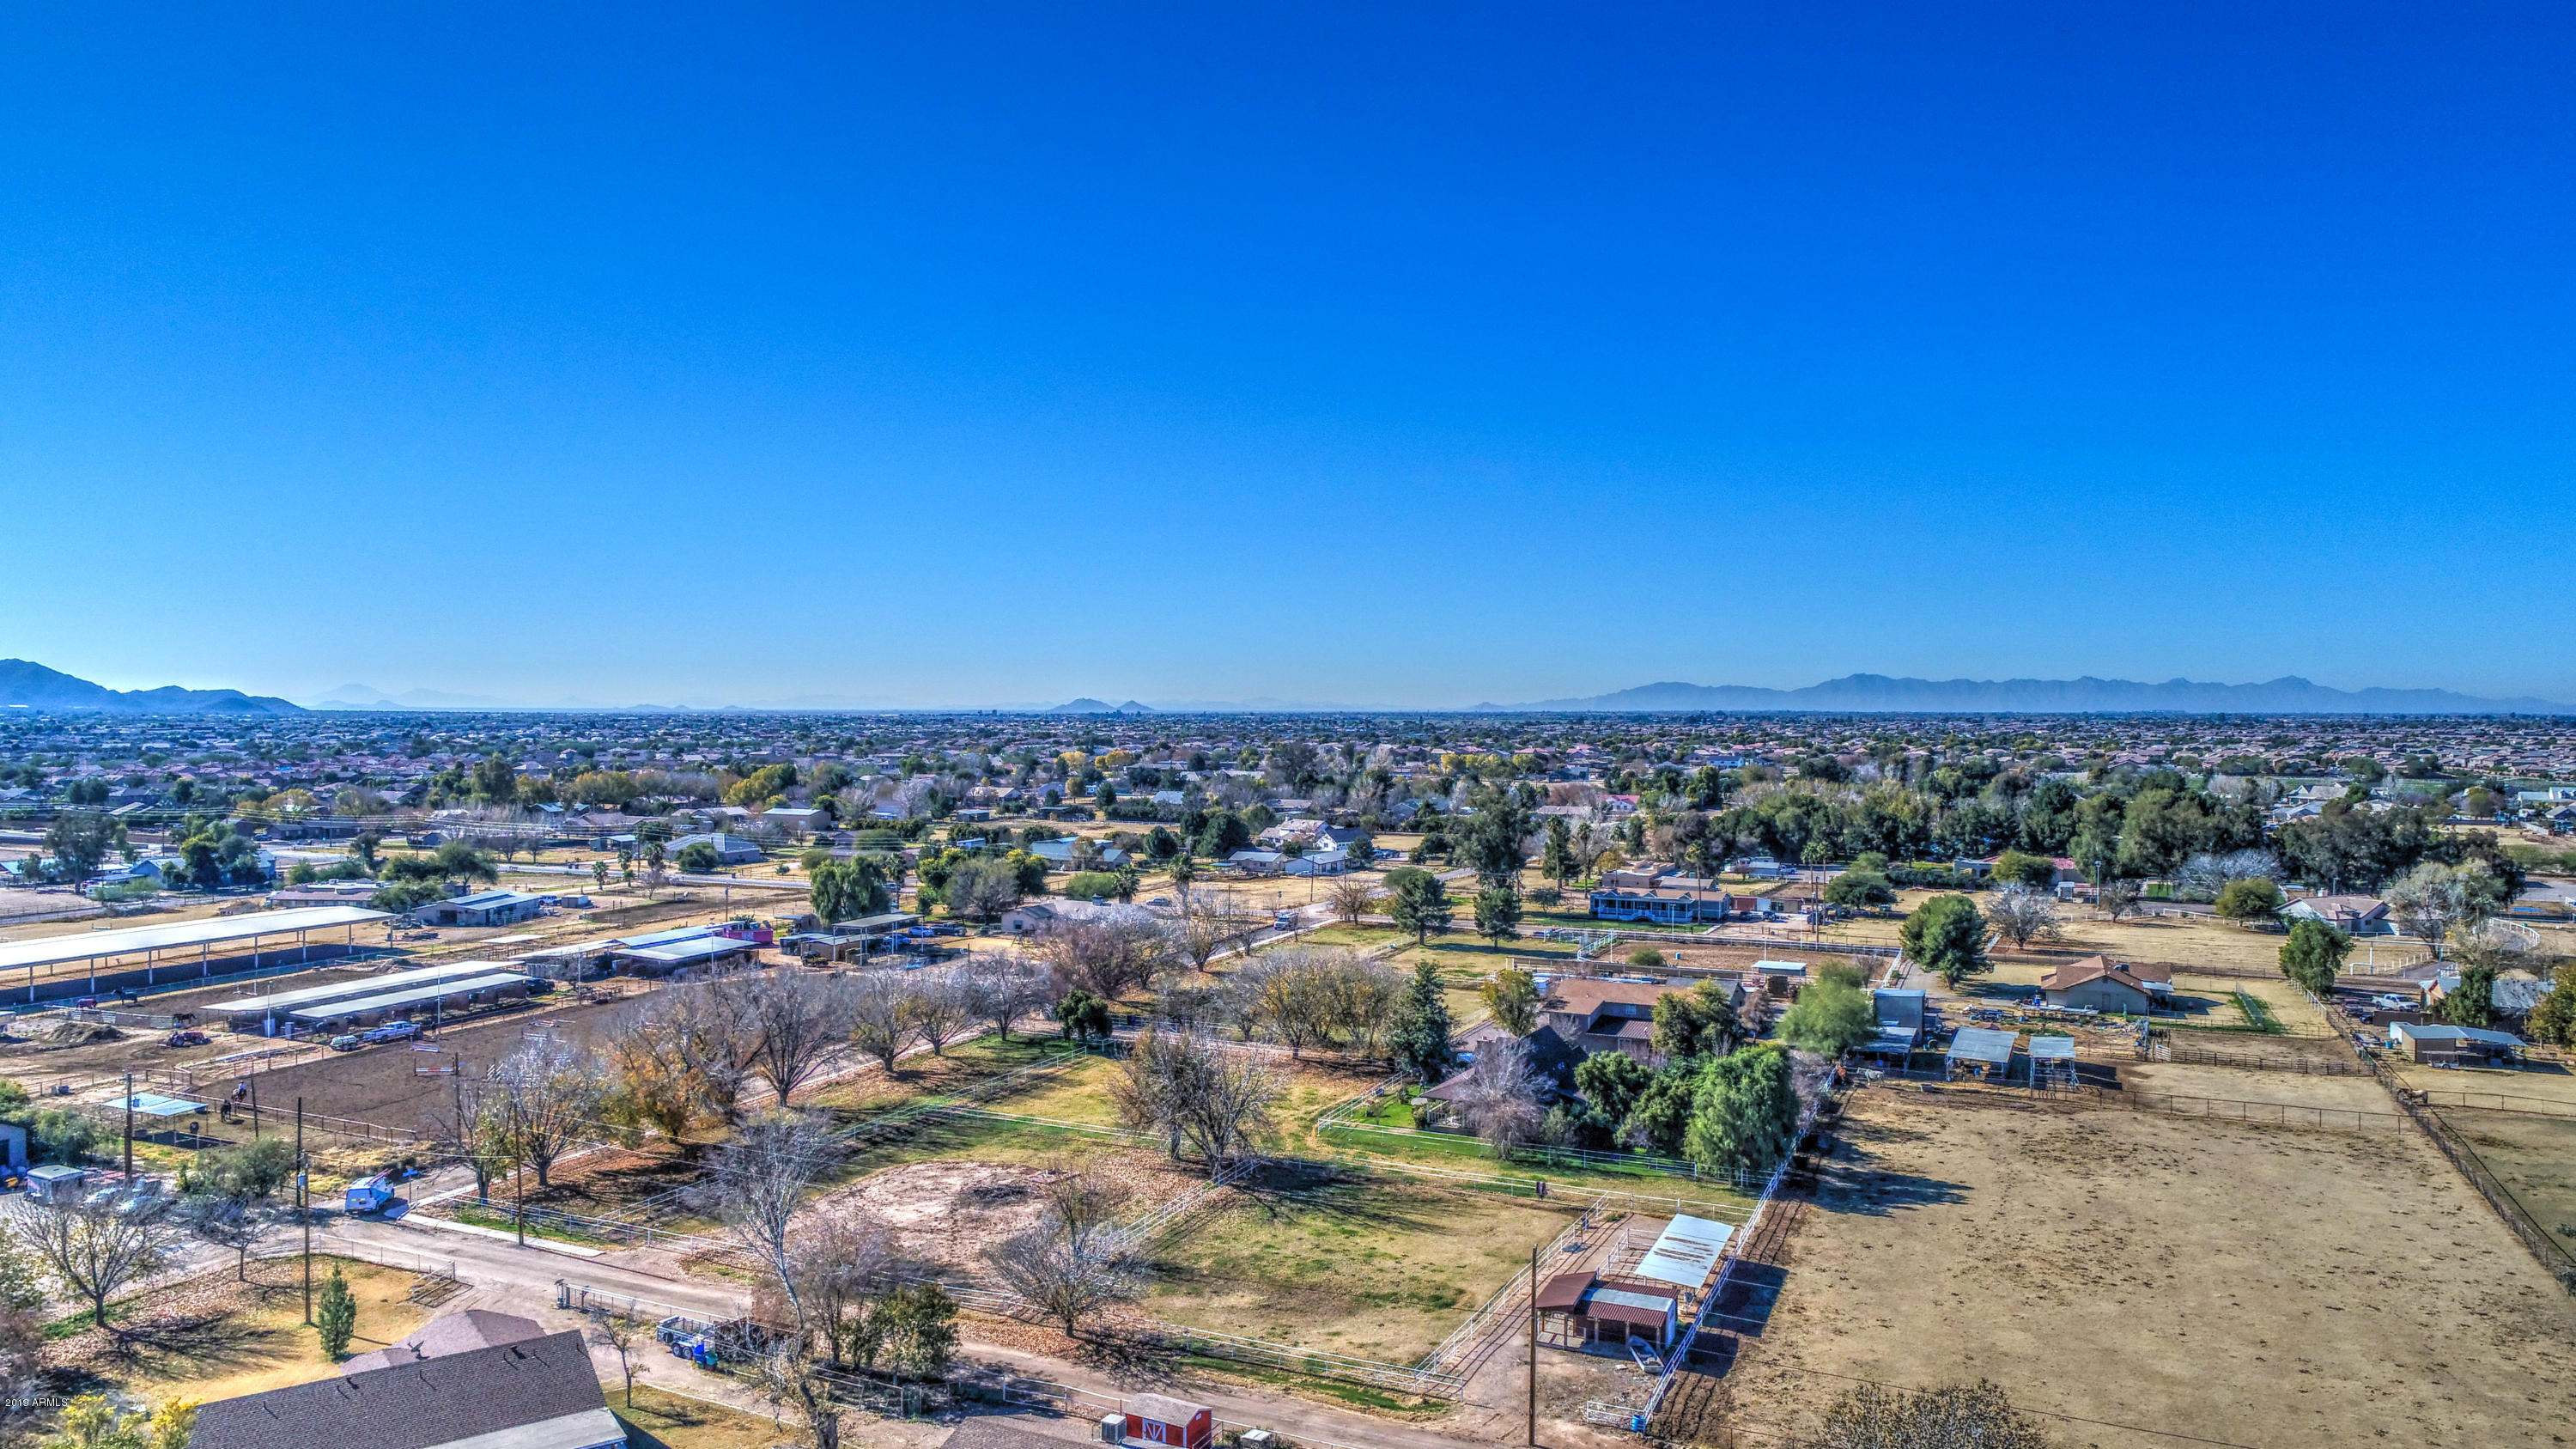 MLS 5863887 22635 S RECKER Road, Gilbert, AZ 85298 Gilbert AZ Equestrian